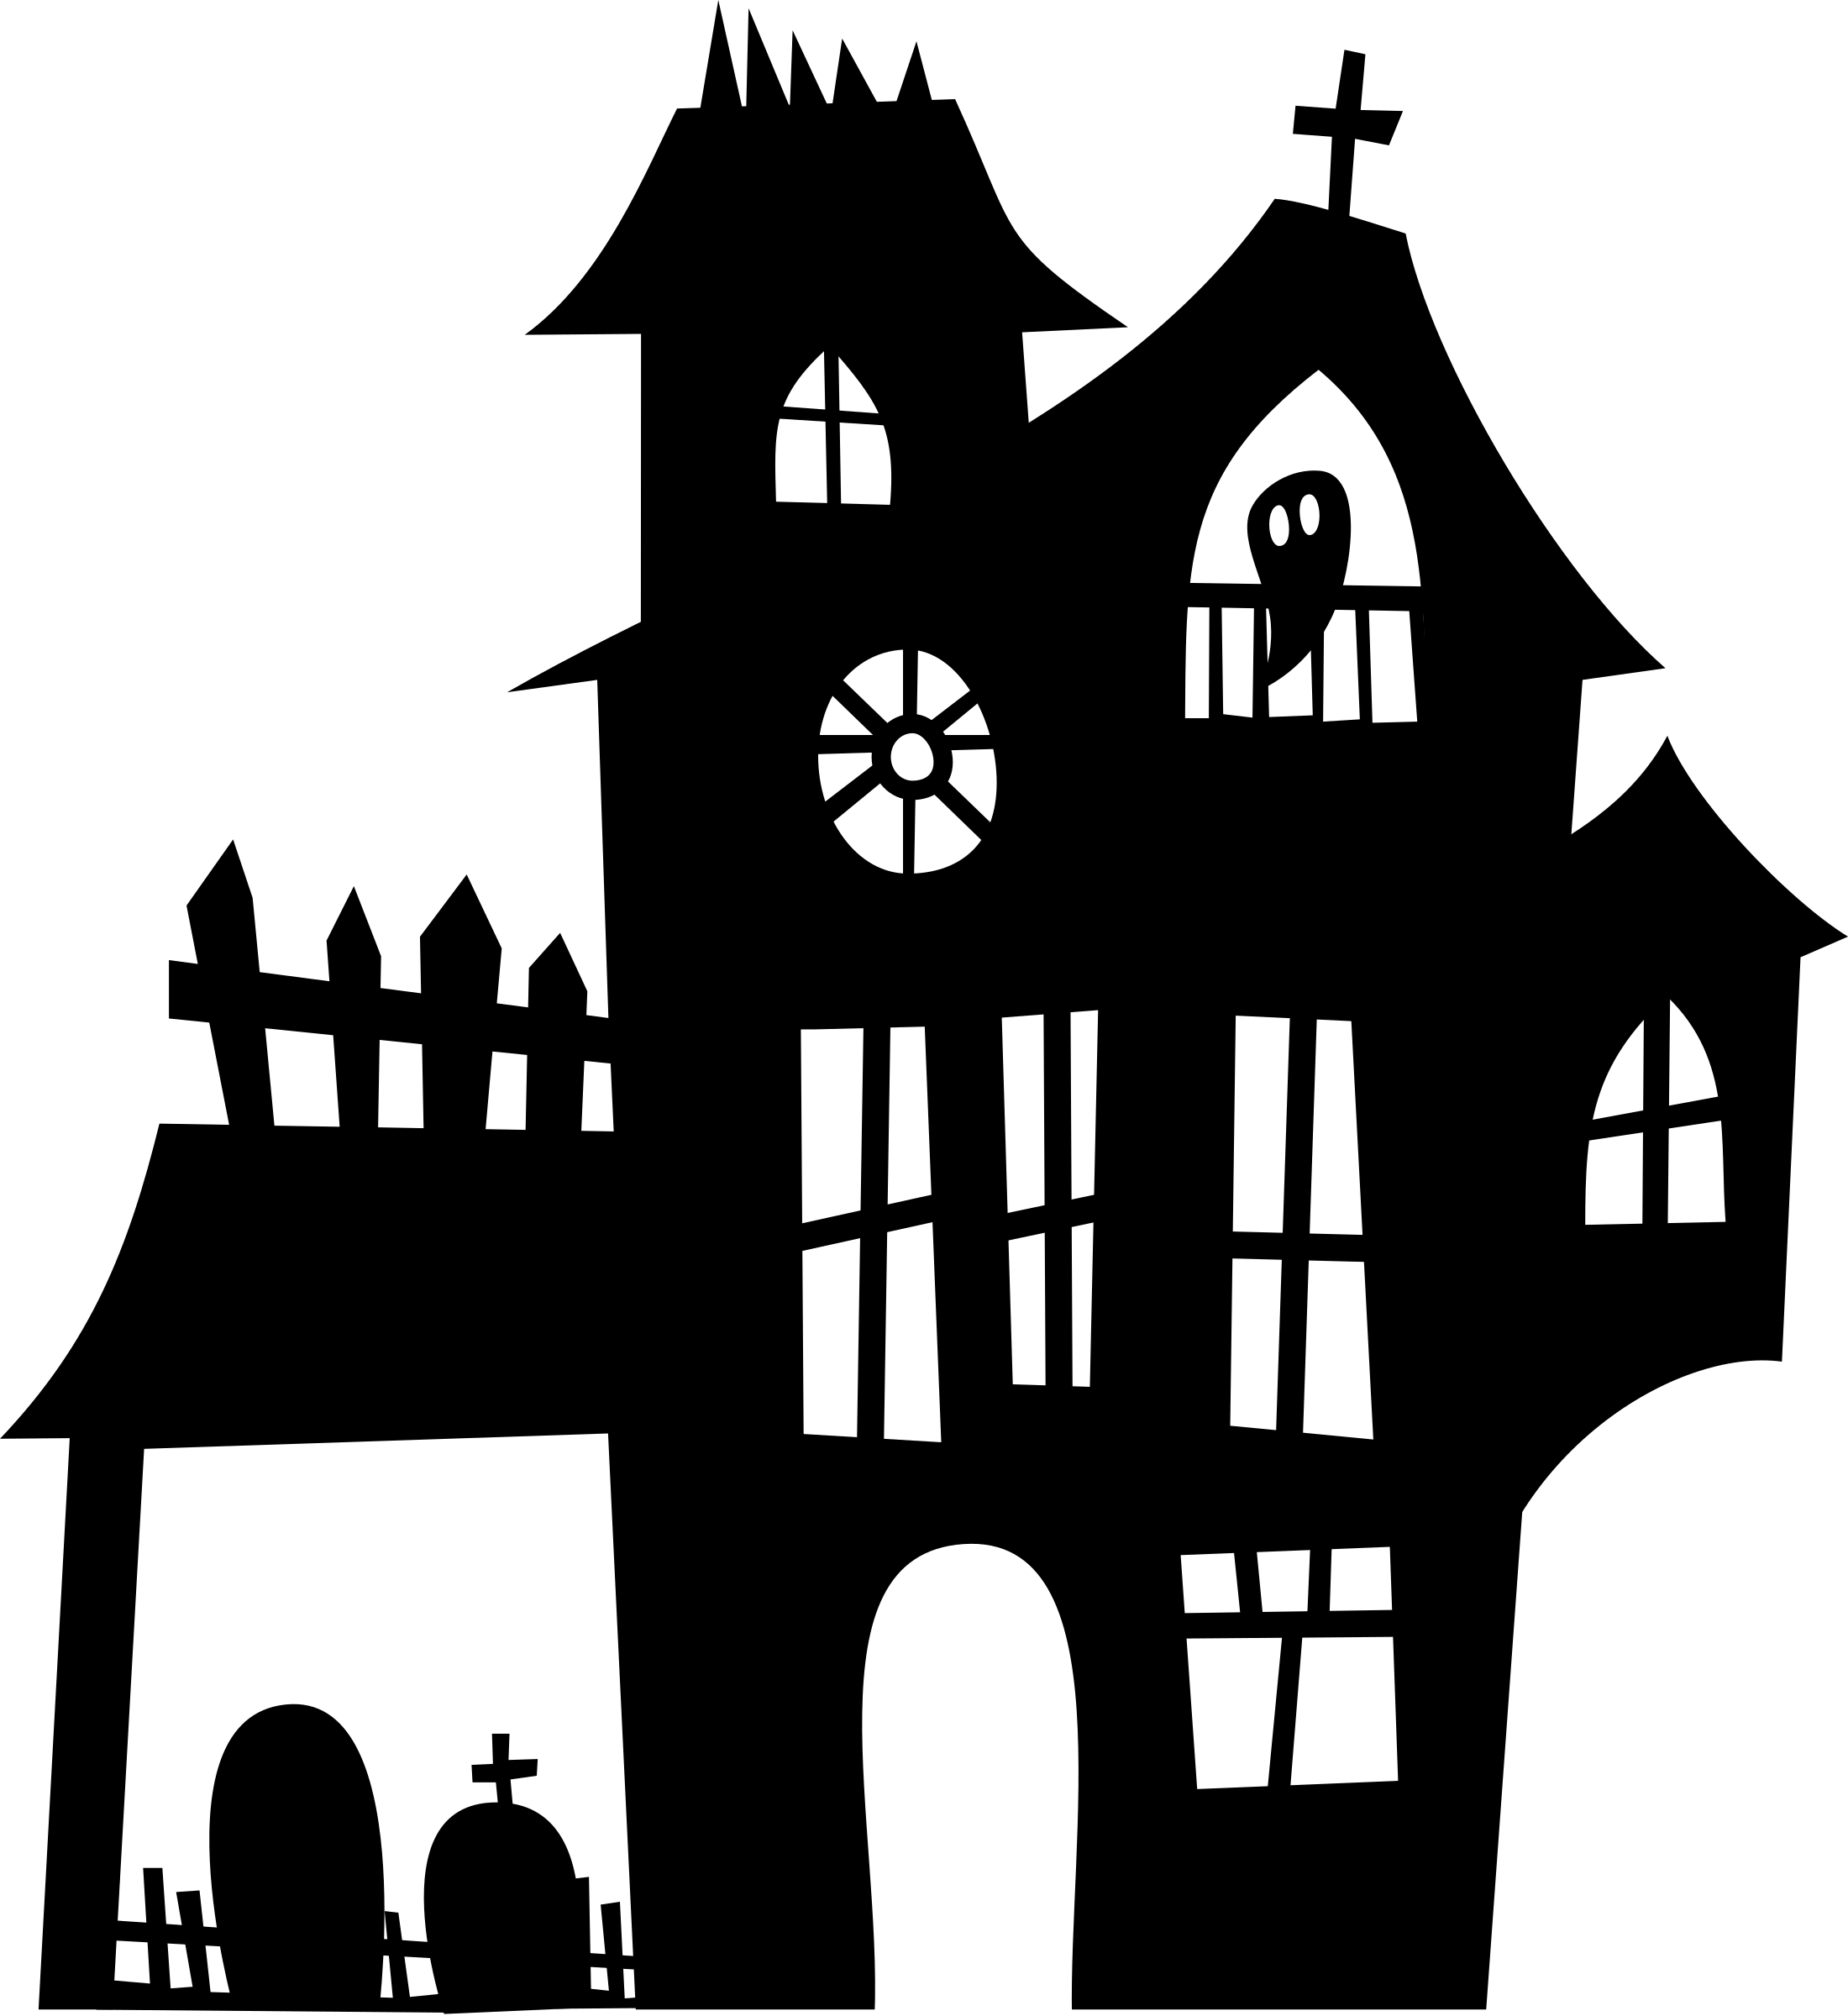 Tower clipart haunted. Mansion silhouette big image